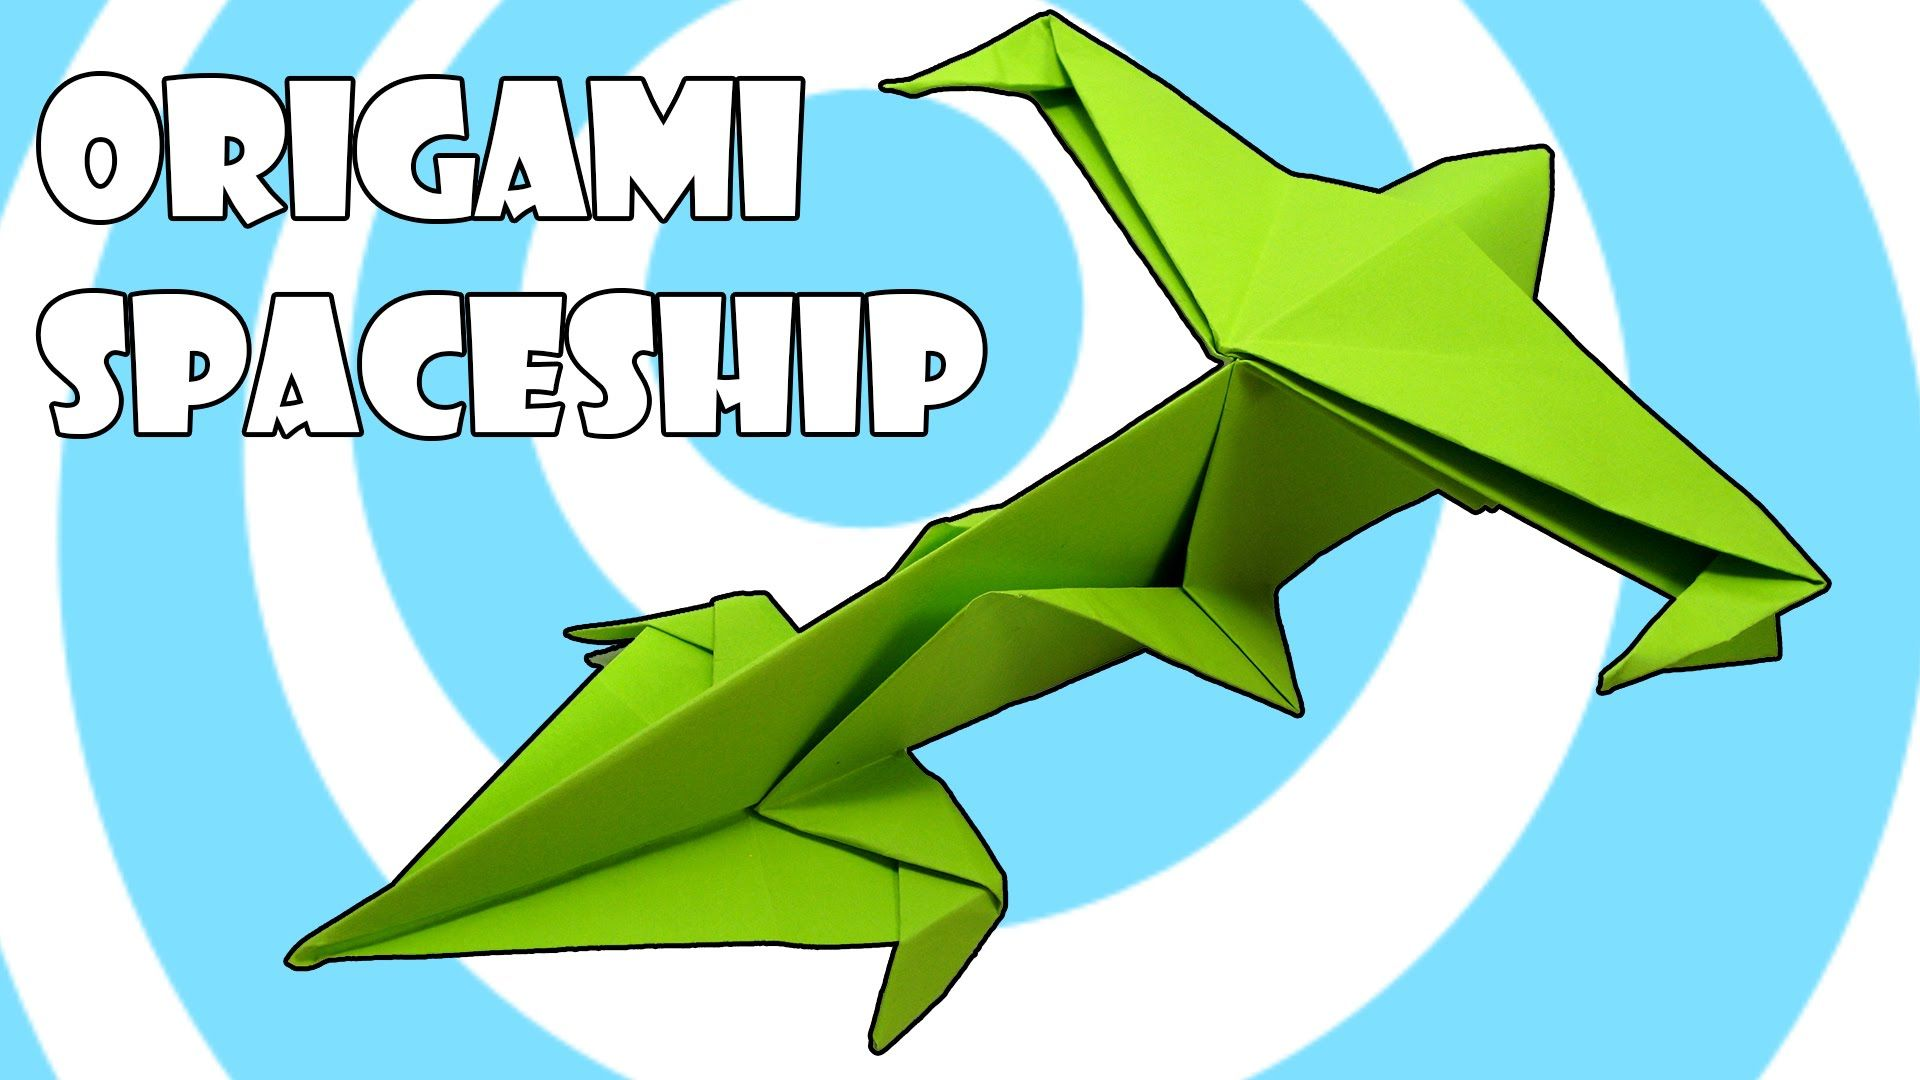 Origami Spaceship Fighter Tutorial Origamite